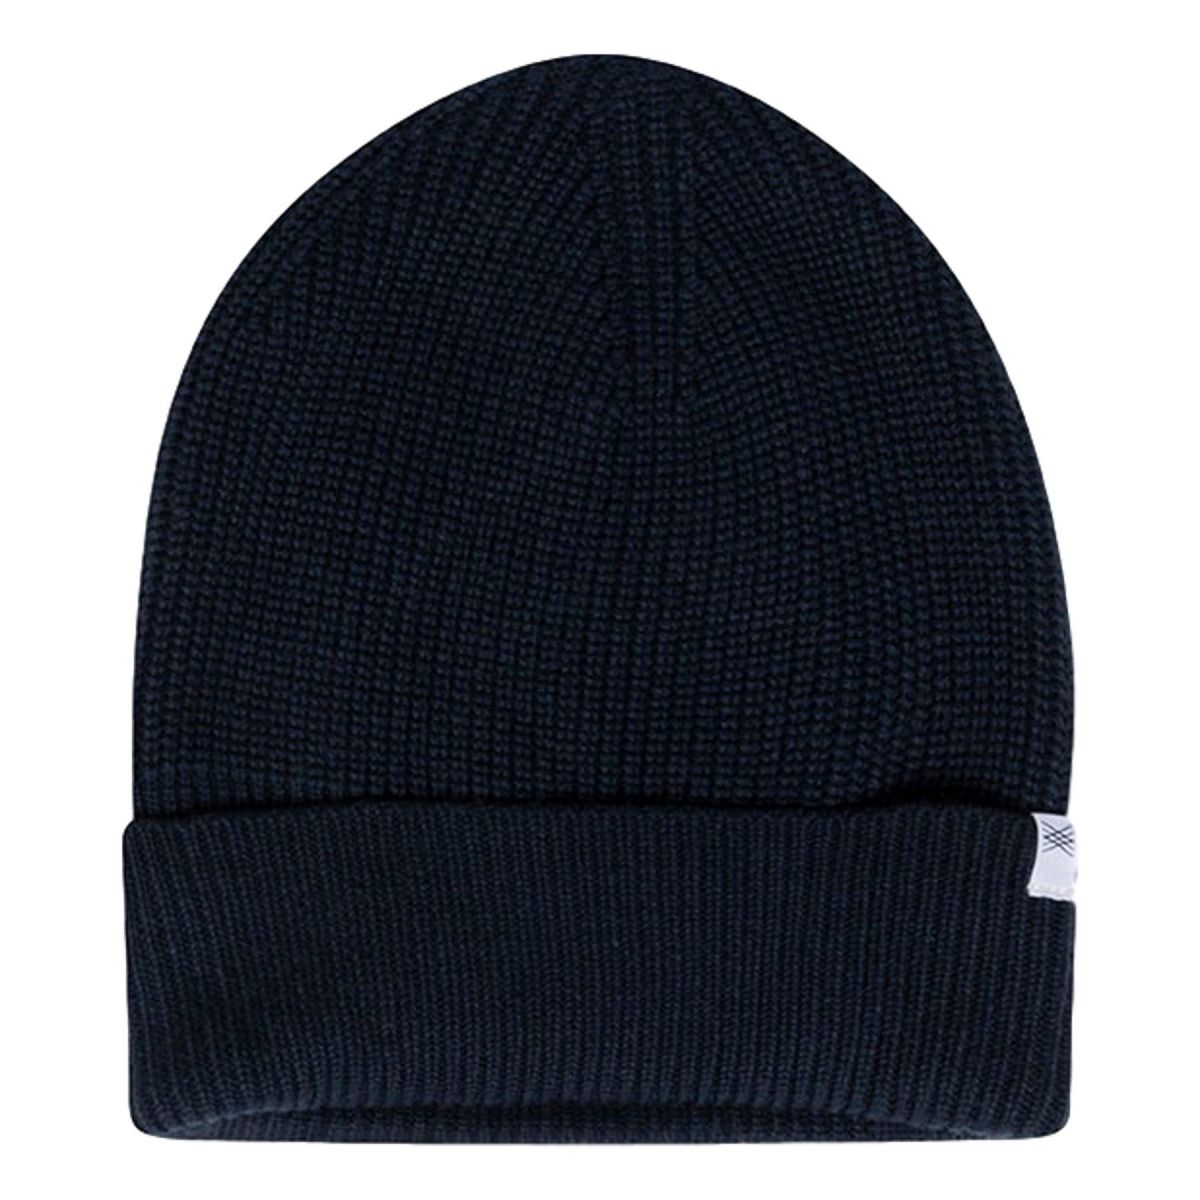 Repose AMS - Knit Hat navy blue - 1